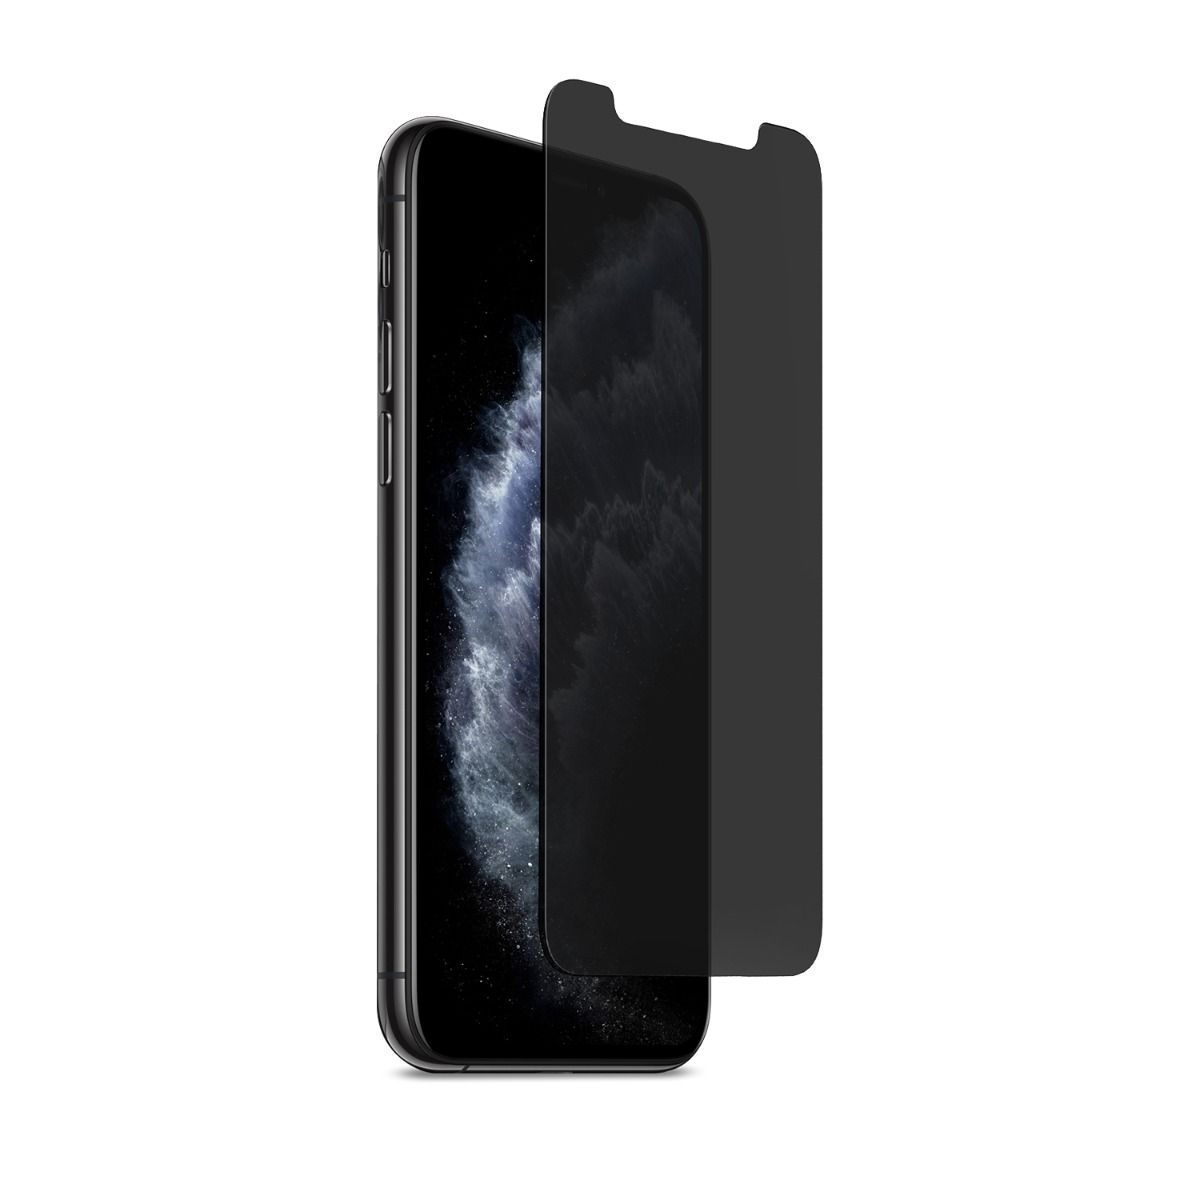 Apple iPhone 11 Pro Max Privacy Glass Screen Protector with Perfect Alignment Tray™